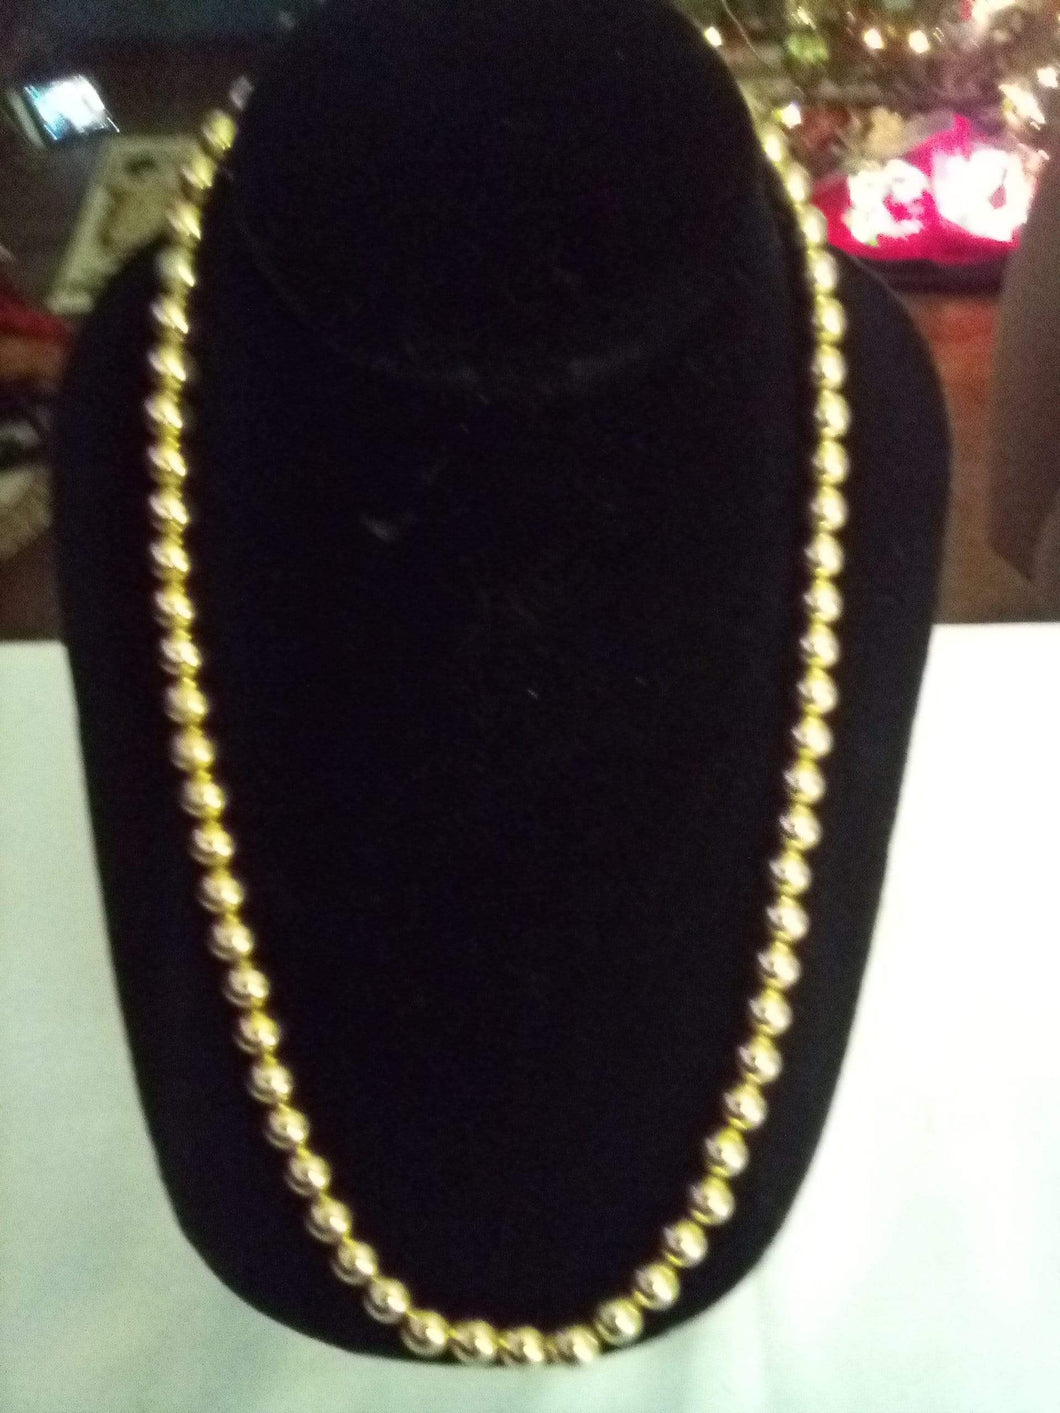 Gold tone beaded necklace - B&P'sringsnthings